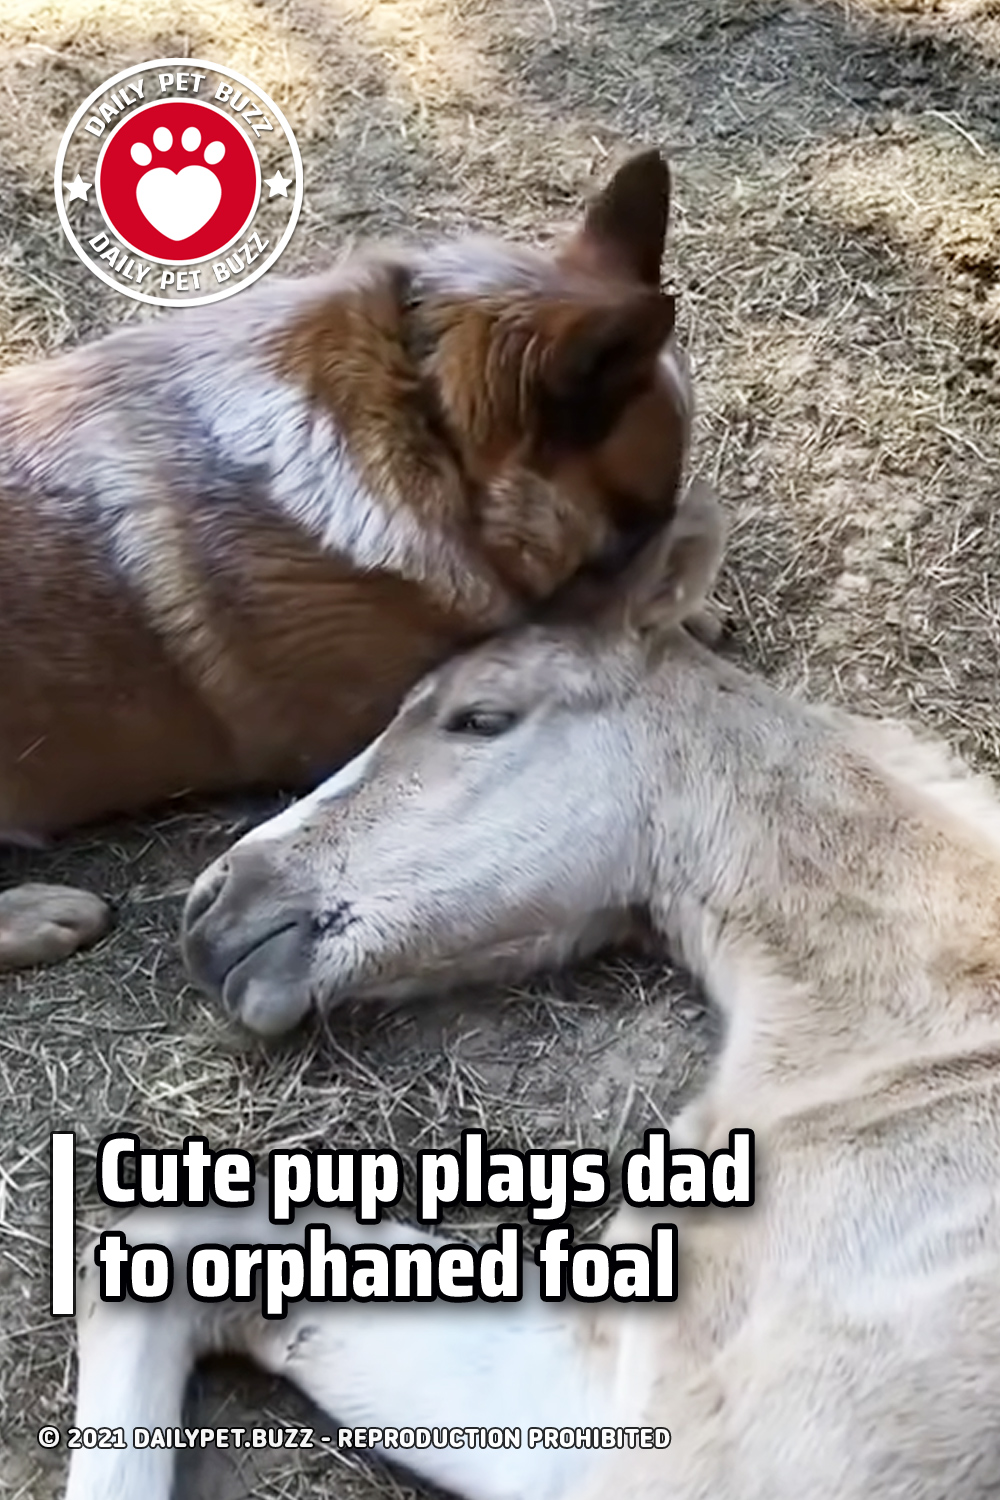 Cute pup plays dad to orphaned foal